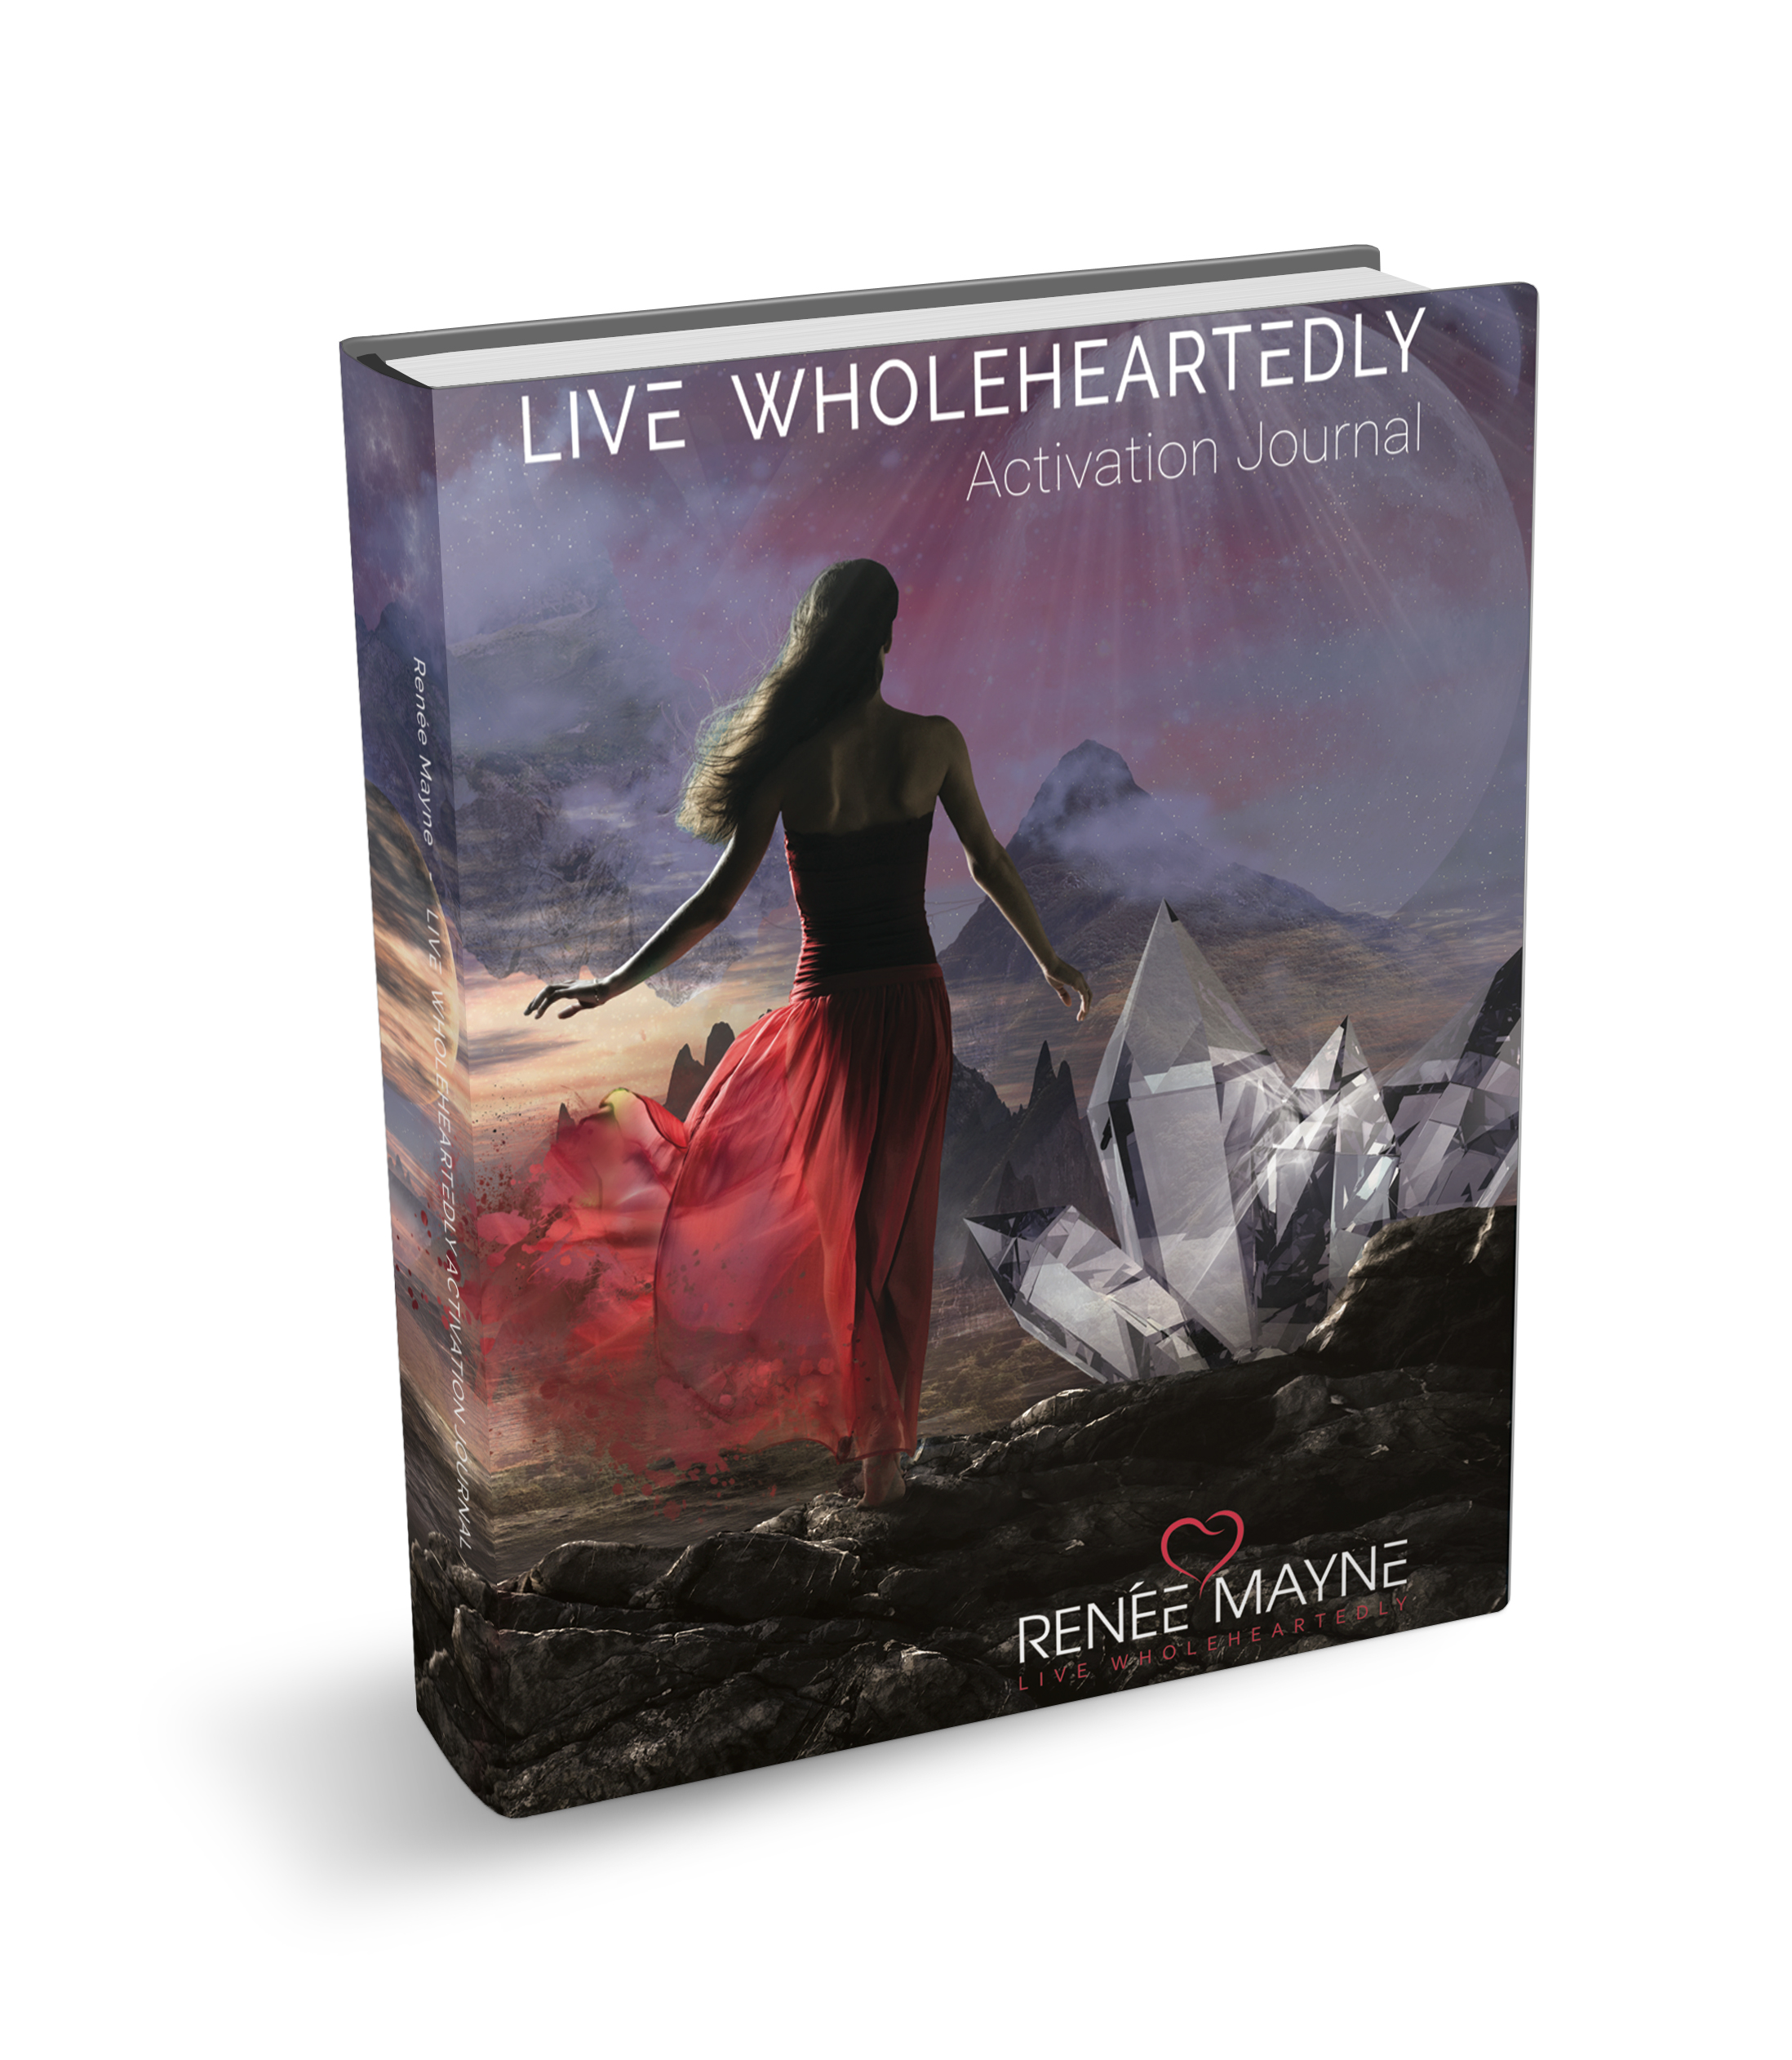 Live Wholeheartedly Activation Journal